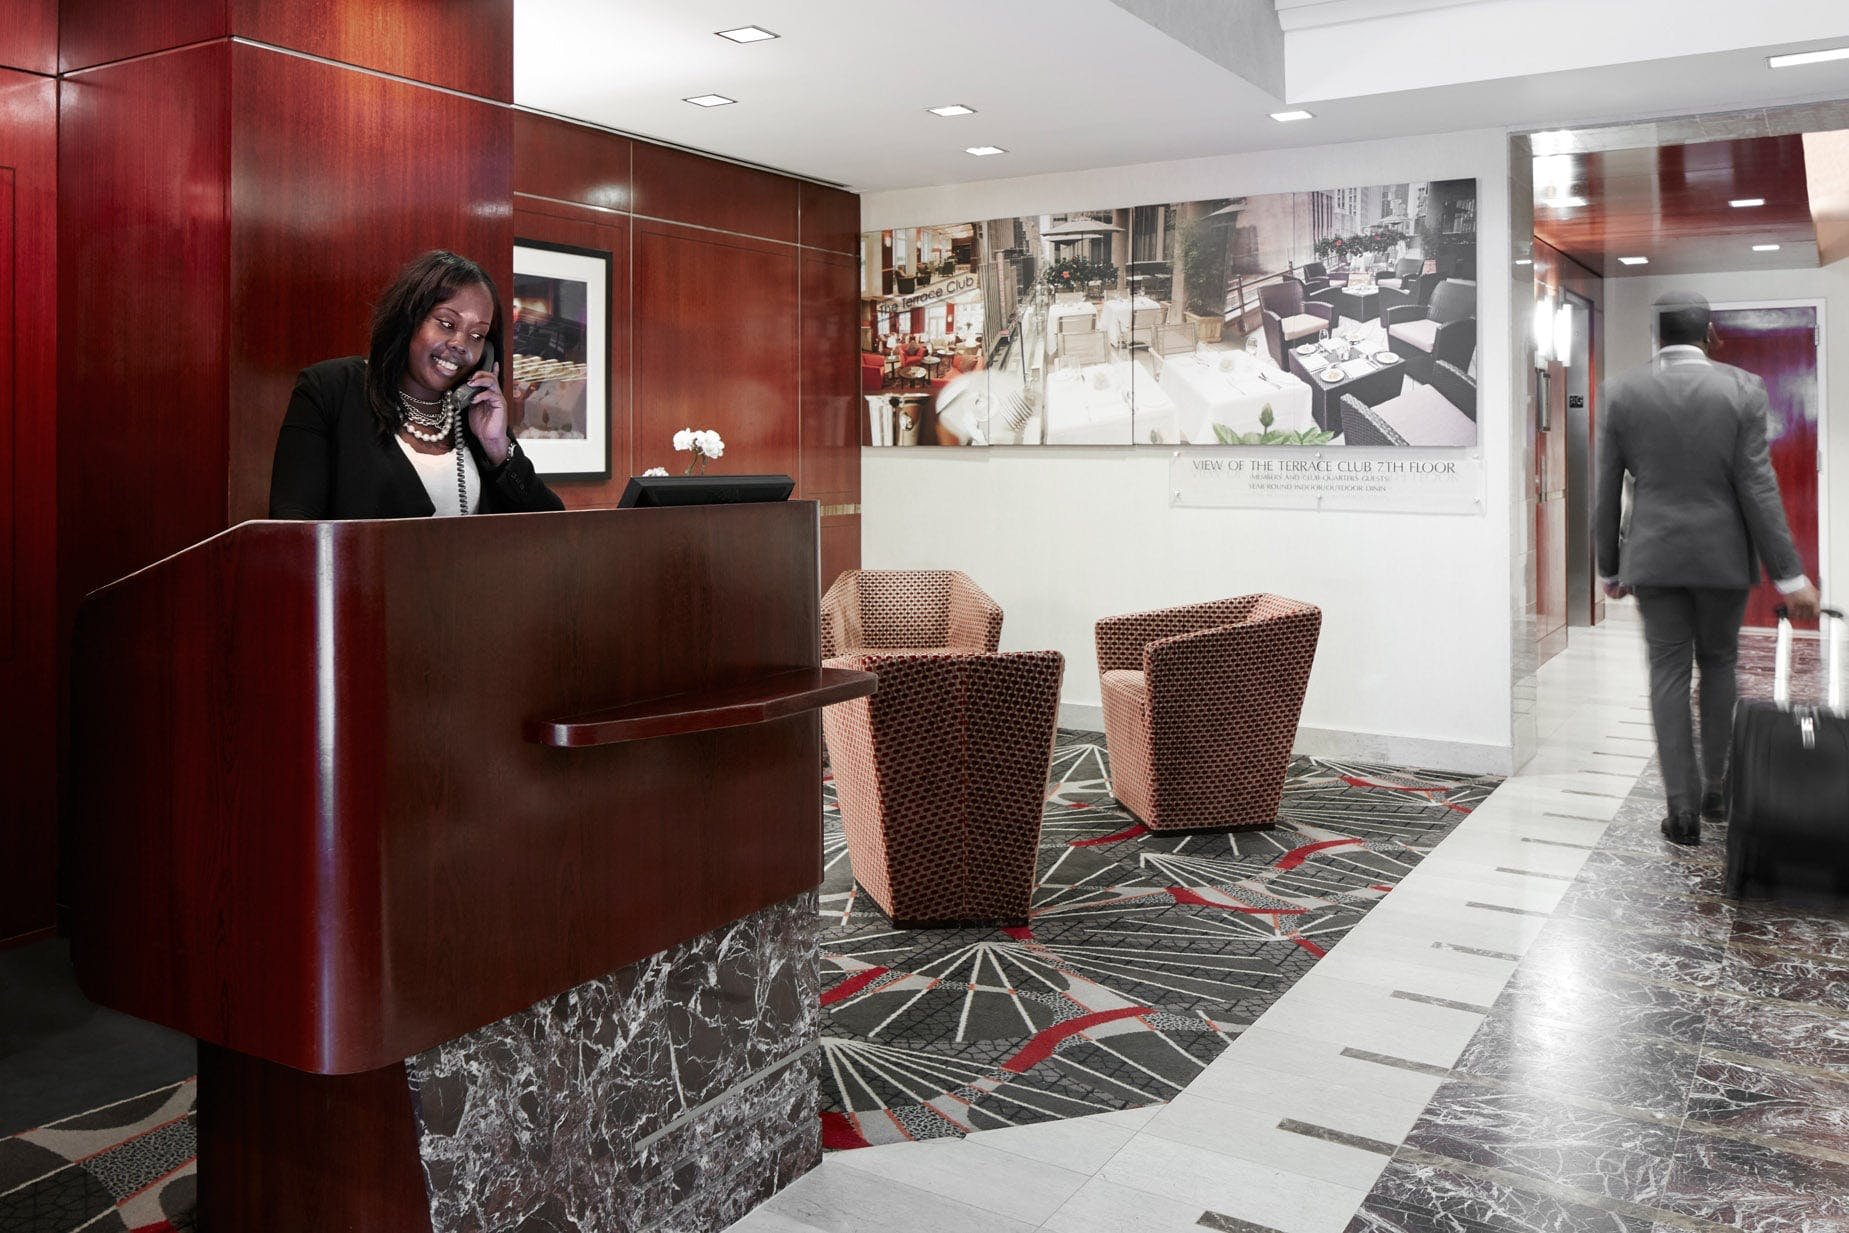 Member Service Desk at Club Quarters Hotel, opposite Rockefeller Center